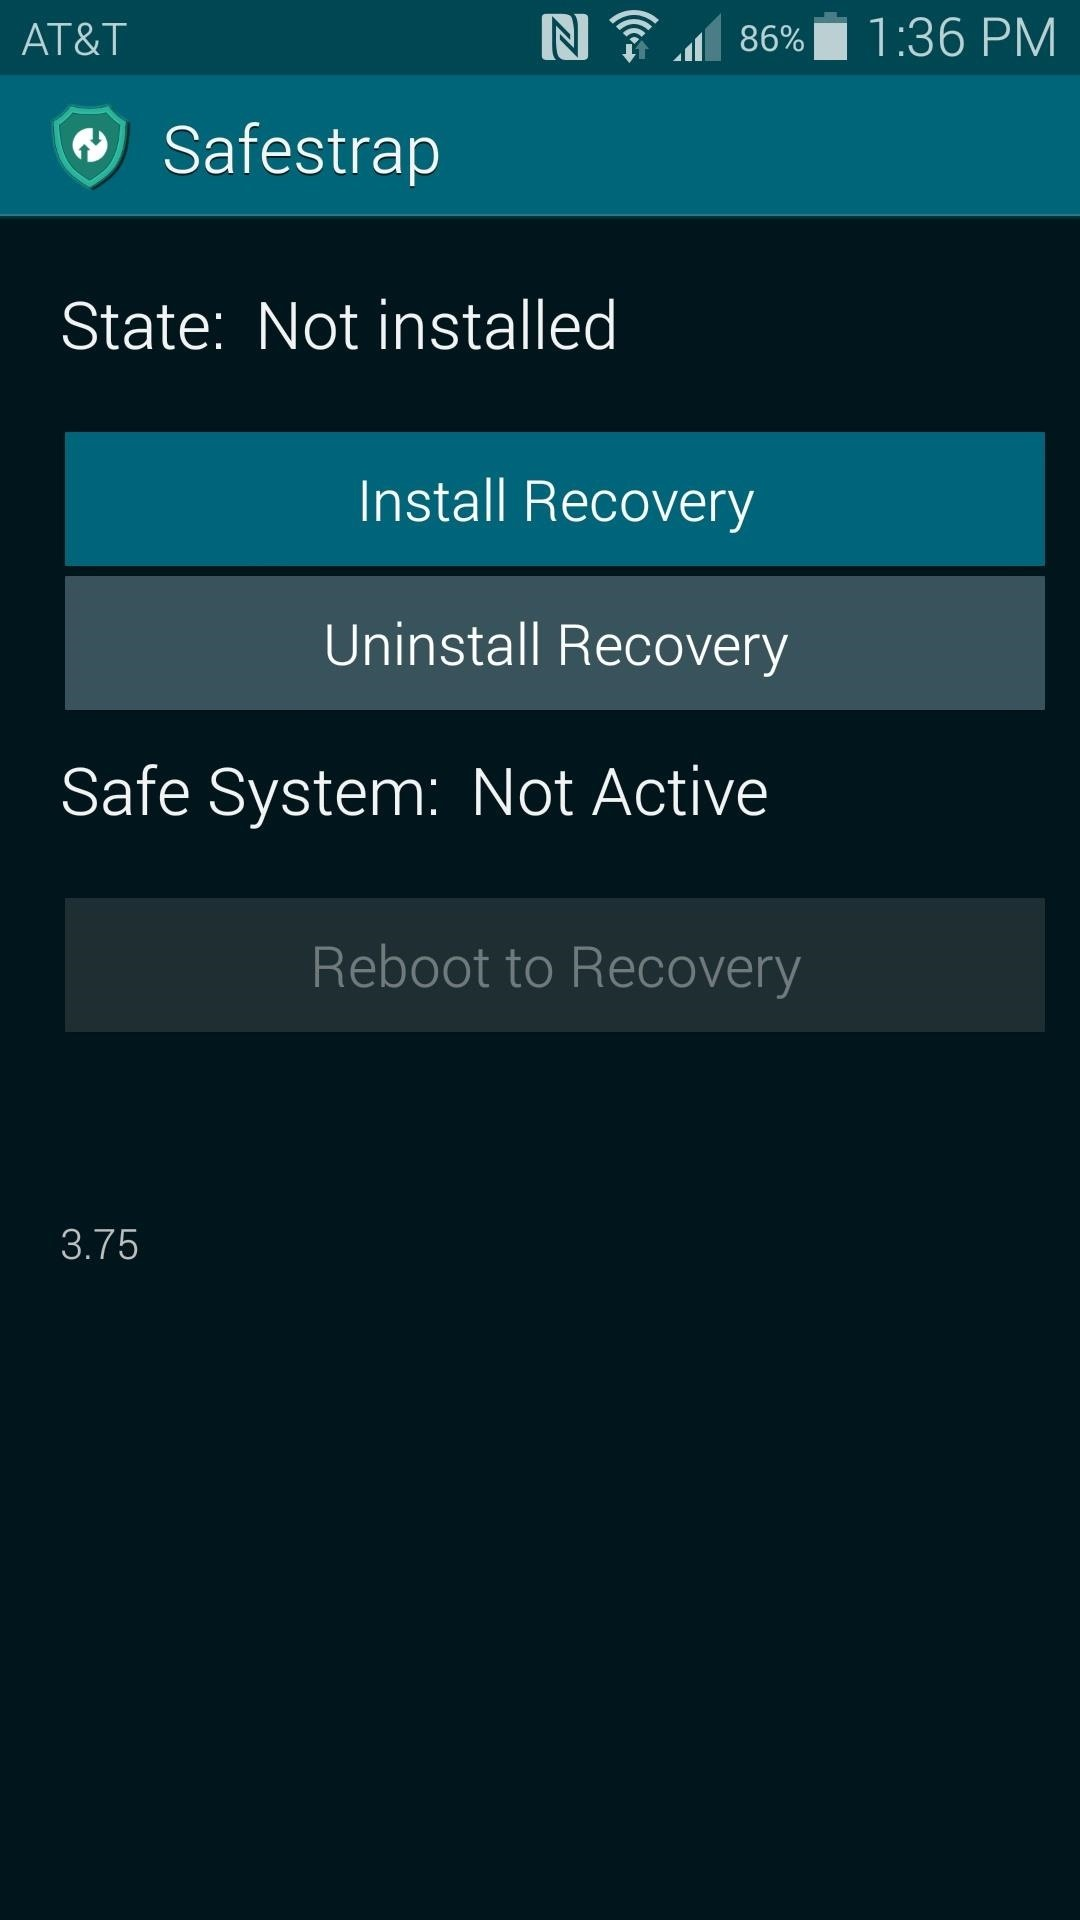 How to Install a Custom Recovery on Your Bootloader-Locked Galaxy S5 (AT&T or Verizon)